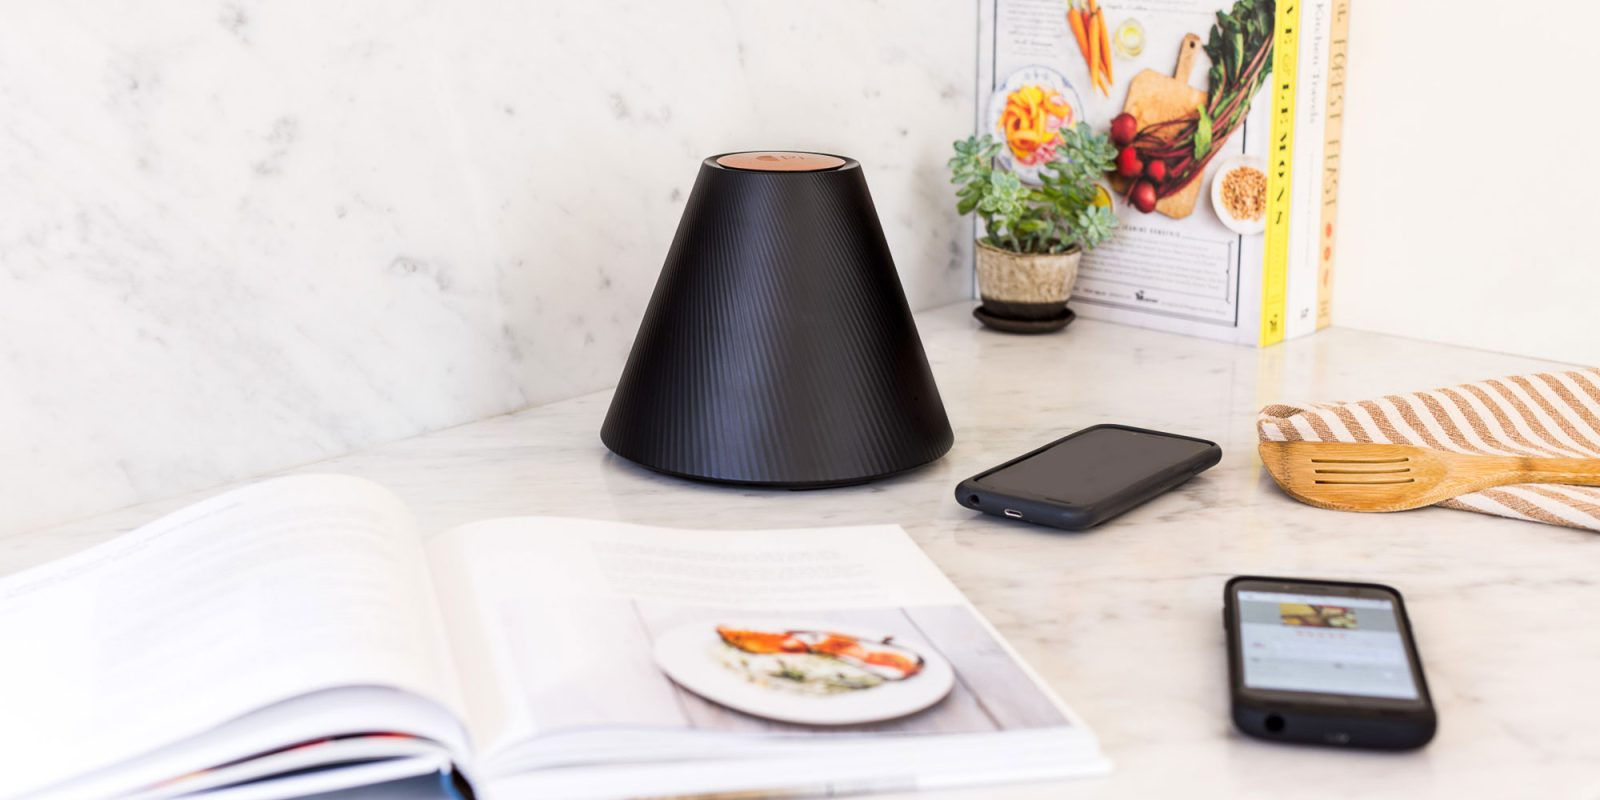 Charge your iPhone from up to a foot away with Pi, a new type of wireless charger